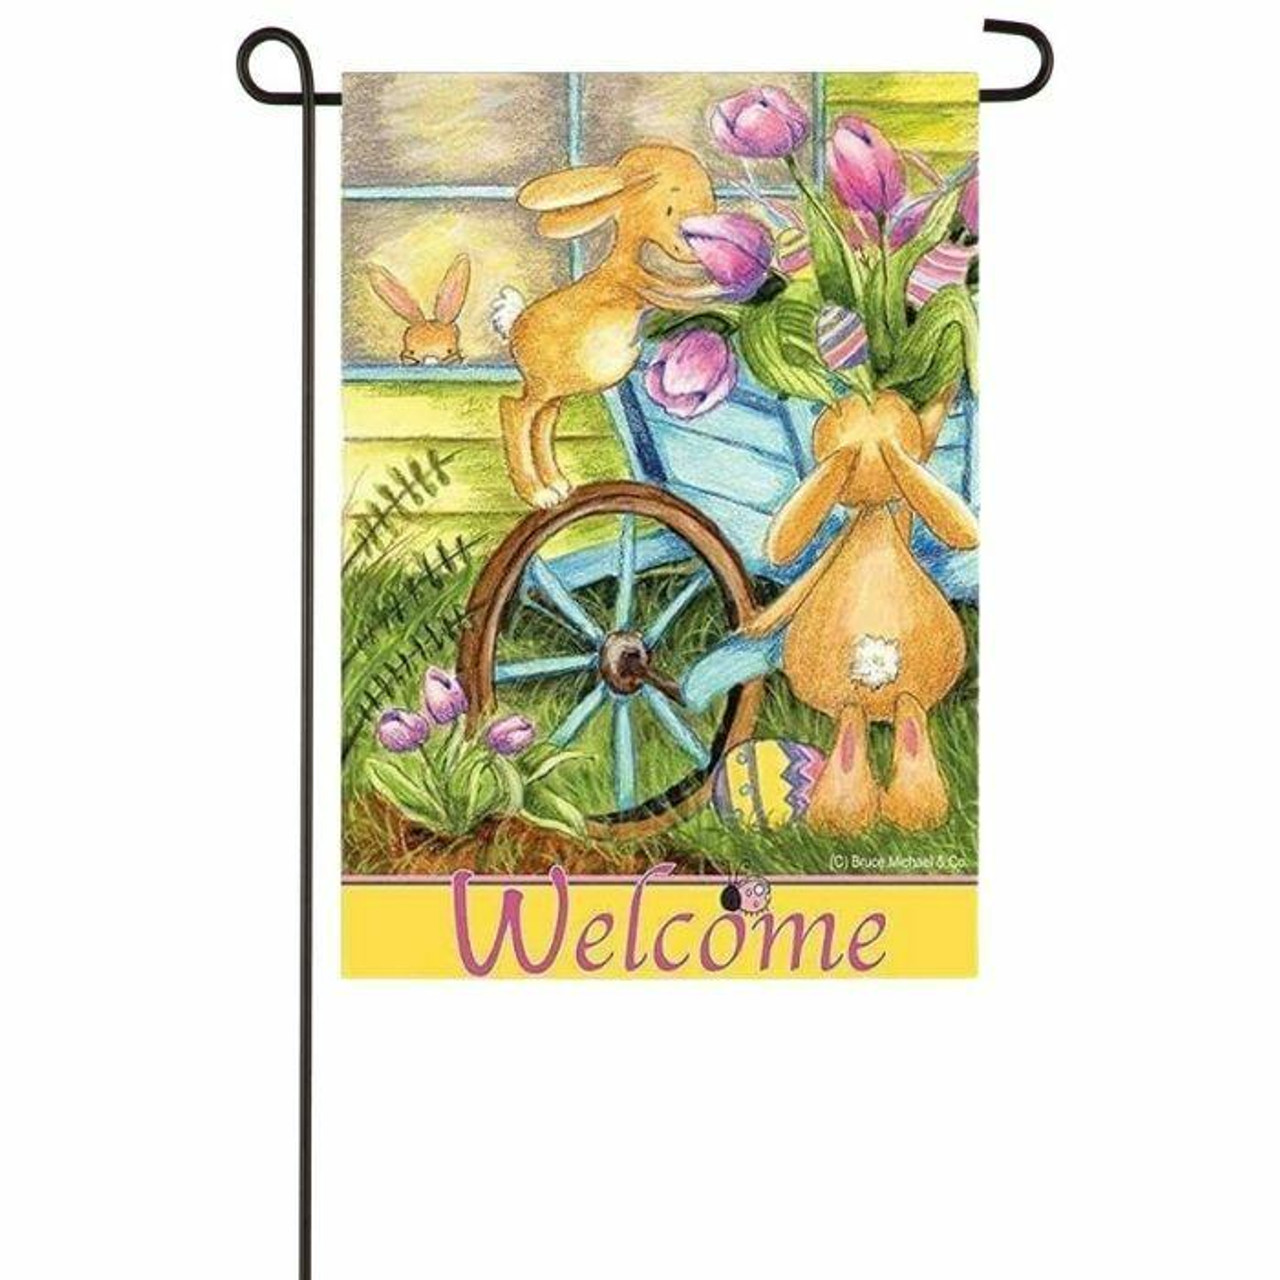 Welcome Easter Garden Flag with bunnies and tulips